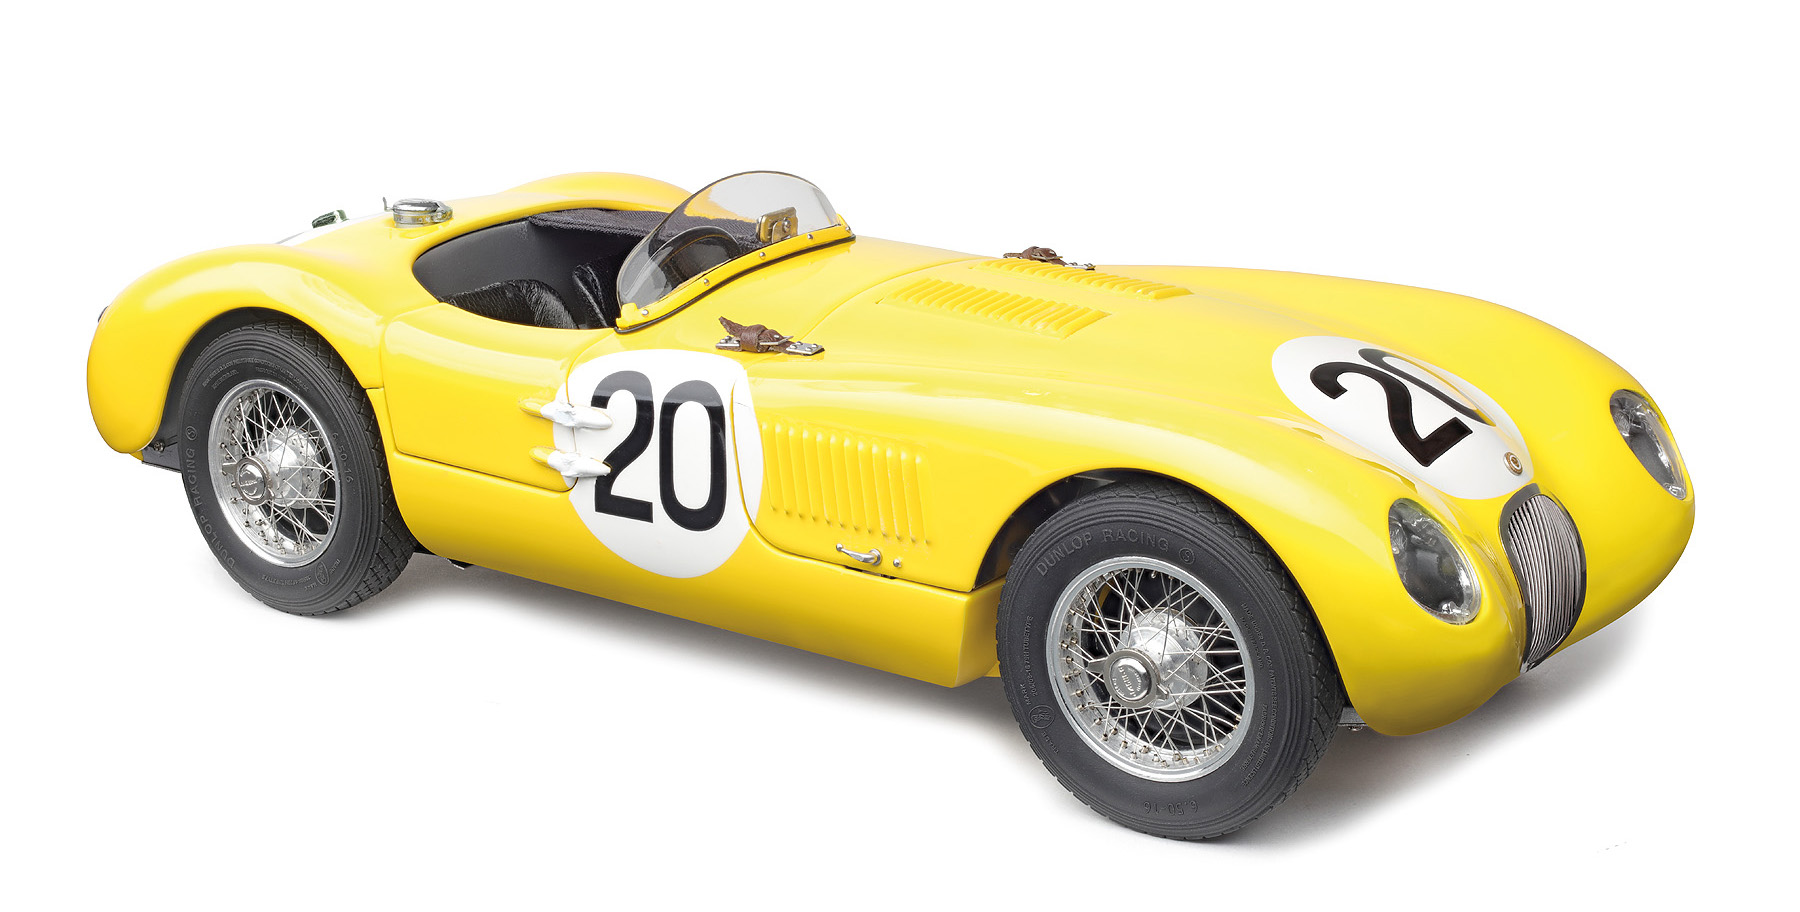 CMC 1/18 ジャガー Cタイプ スパイダー #20 ルマン24時間 1953 JAGUAR - C-TYPE SPIDER TEAM JAGUAR RACING N 20 24h LE MANS 1953 R.LAURENT - C.DE TORNACO